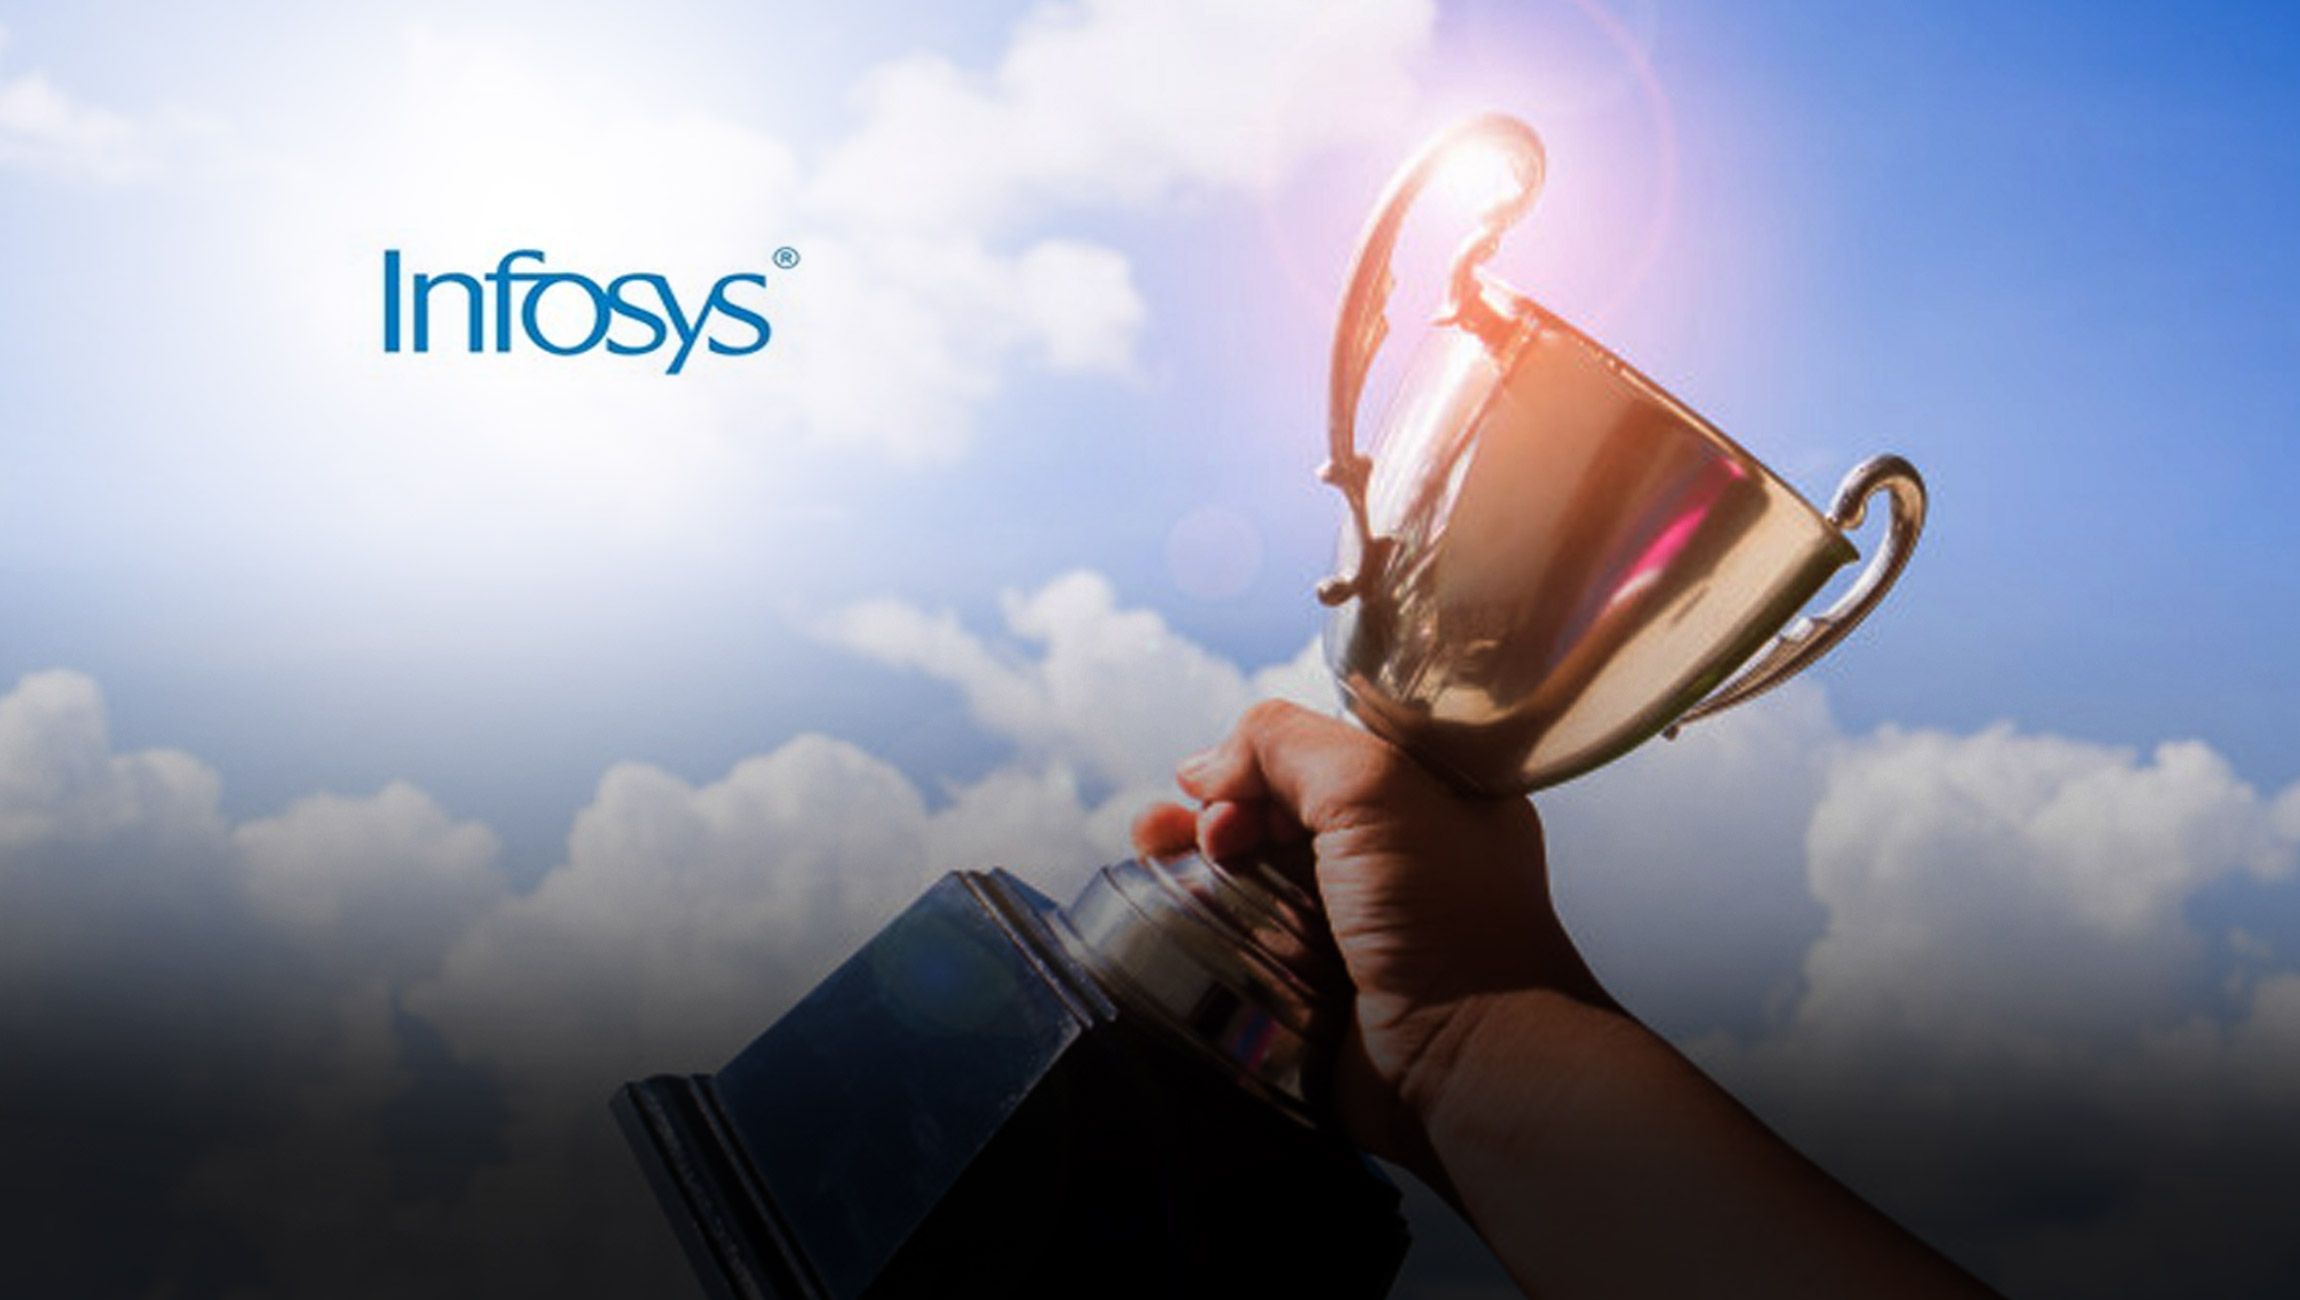 Infosys to Onboard Award-Winning Experience Design Agency, Carter Digital